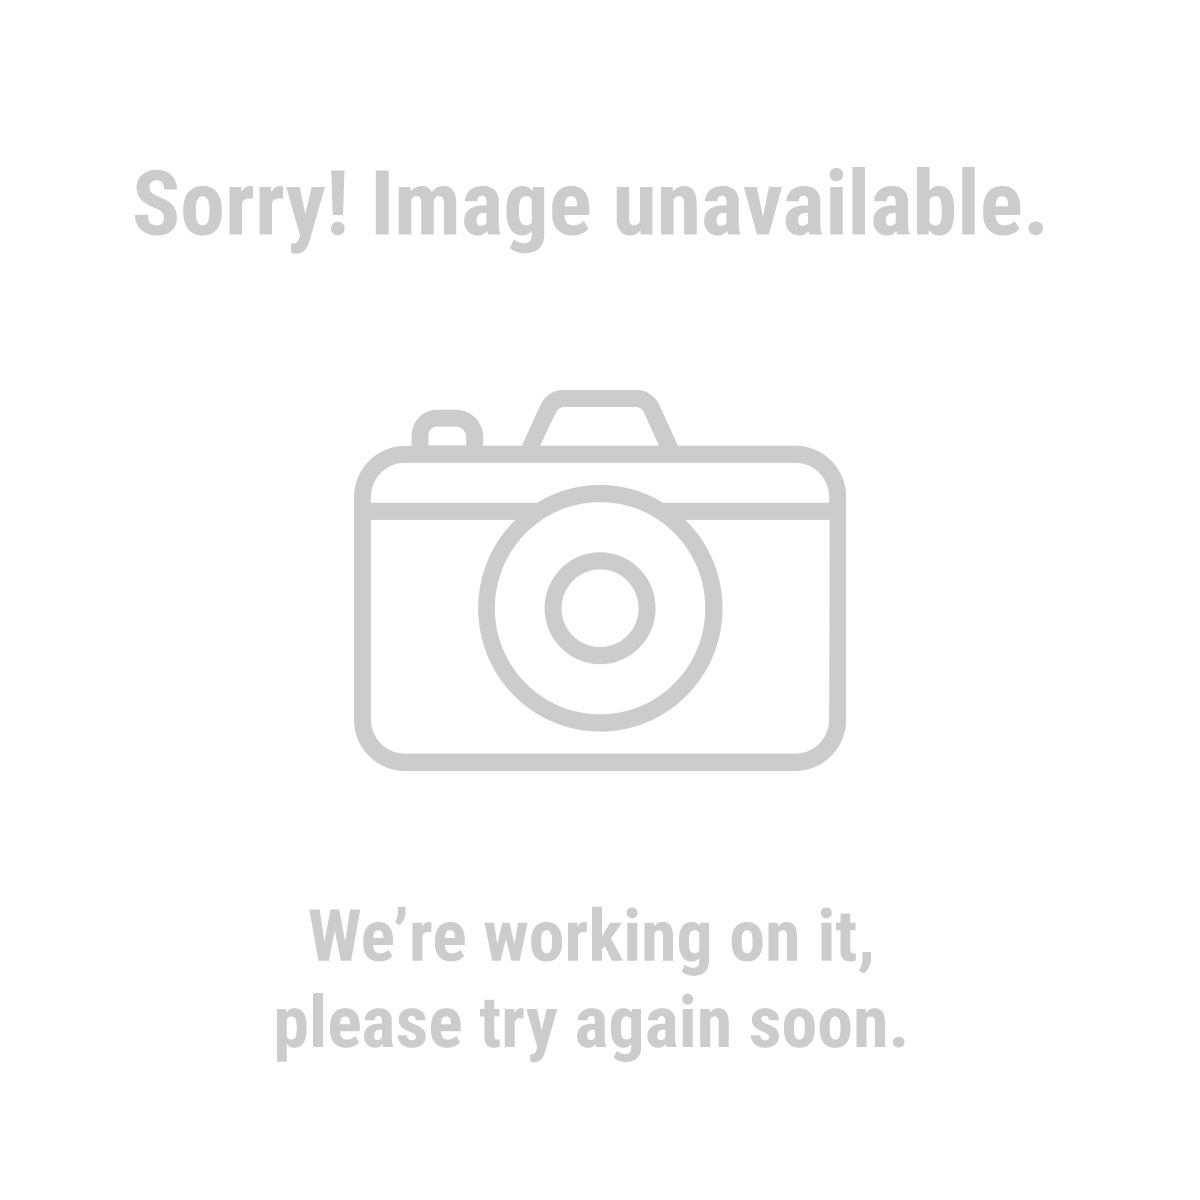 Vanguard 62942 50 ft. x 12 Gauge Outdoor Extension Cord